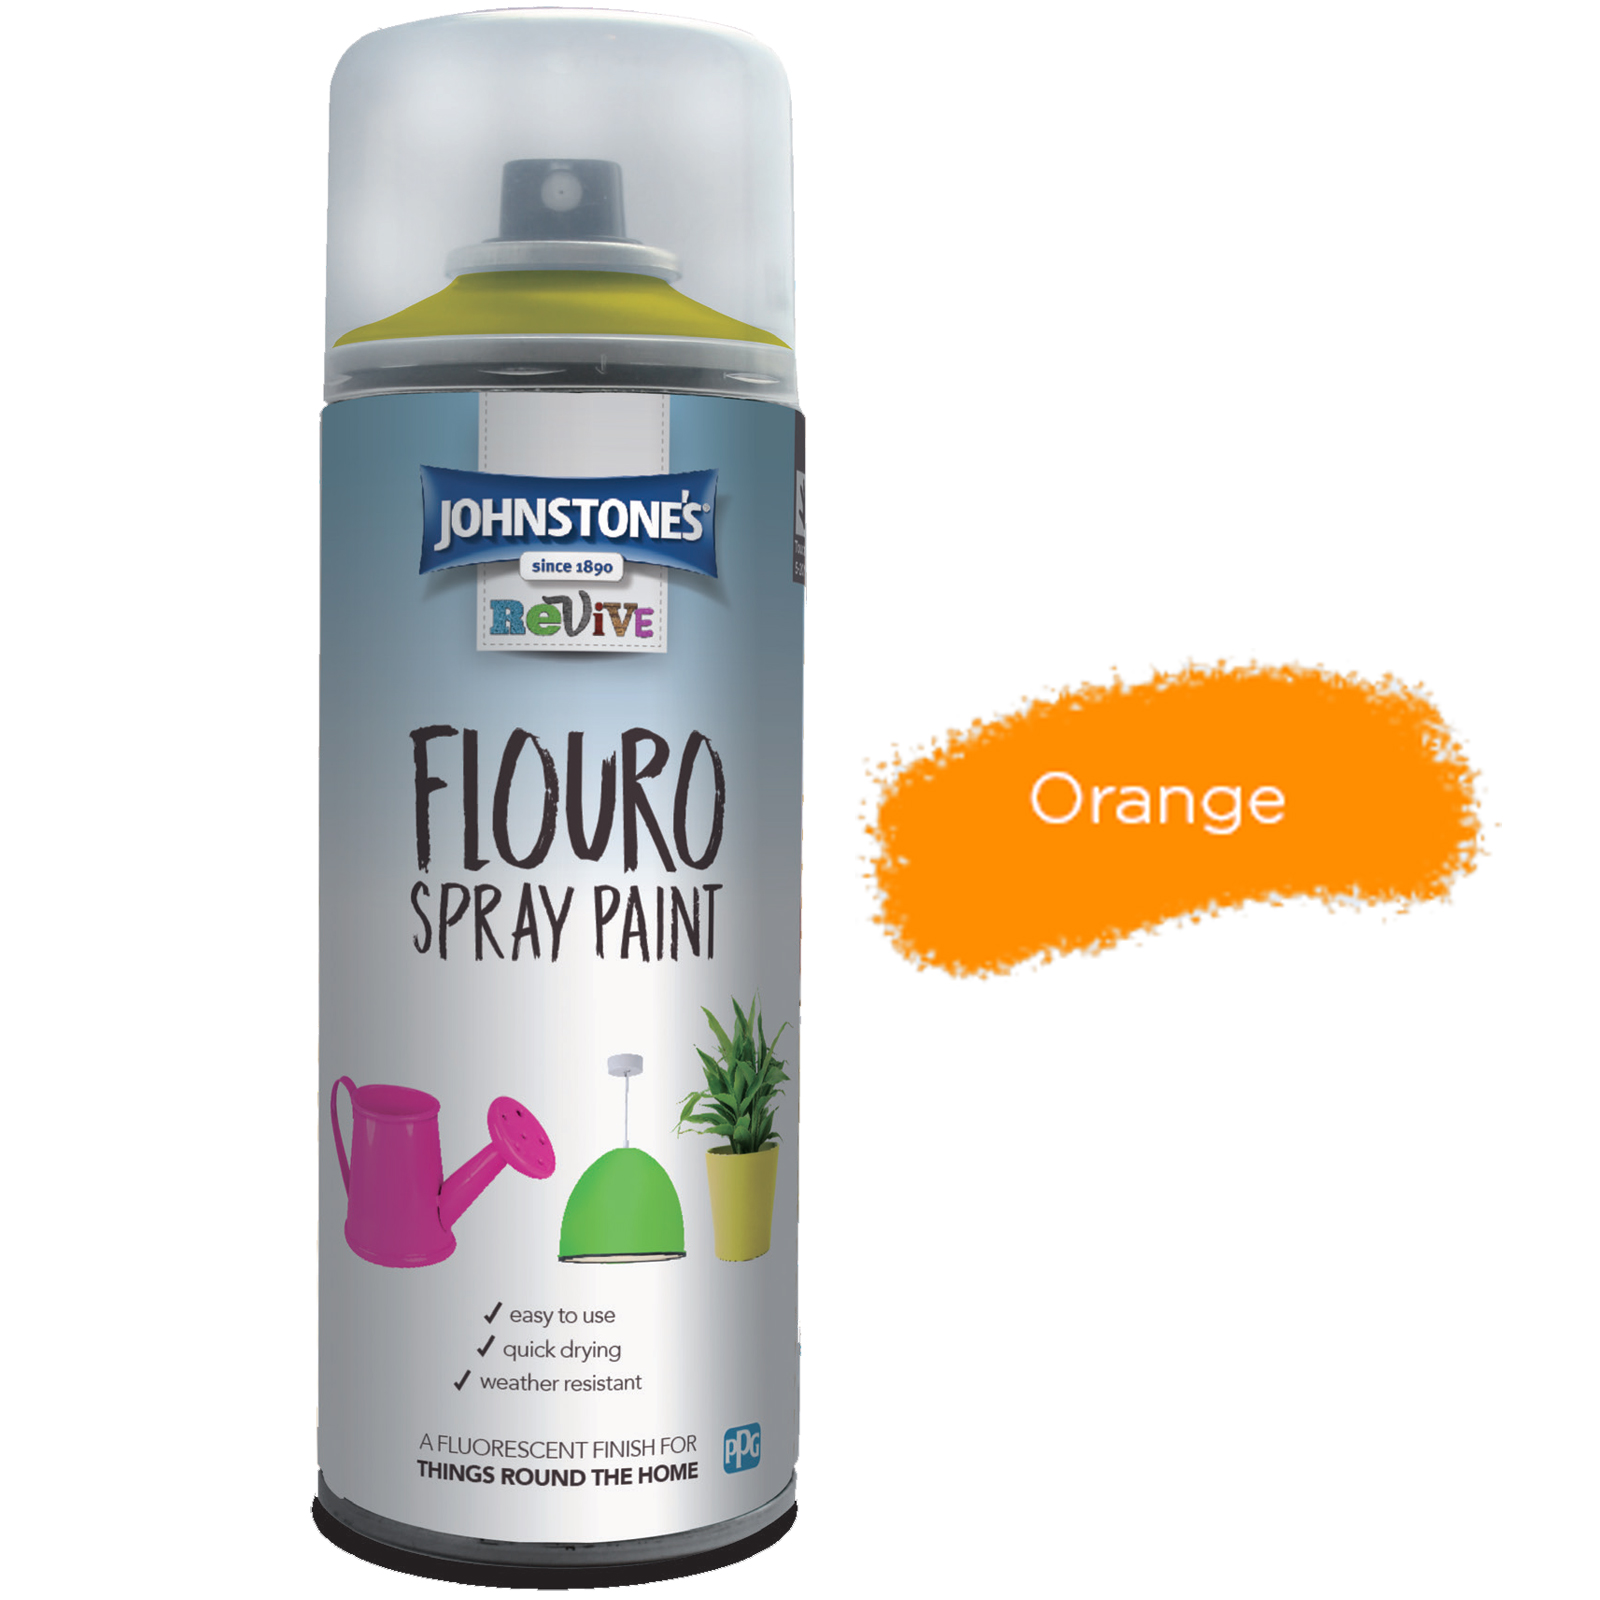 FLOURO SPRAY PAINT ORANGE